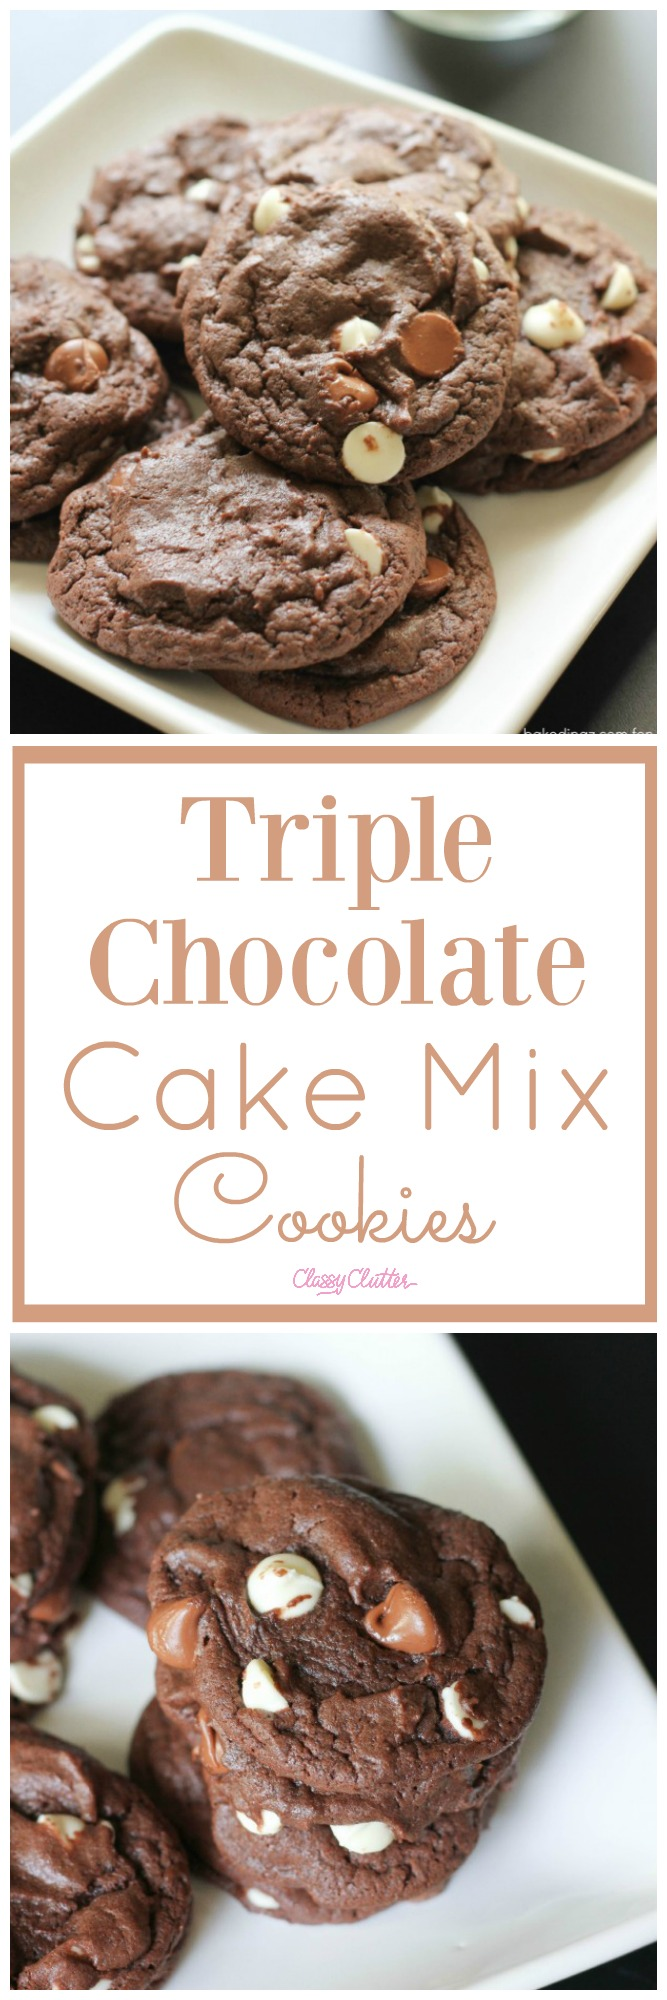 Triple Chocolate Cake Mix Cookies - Classy Clutter